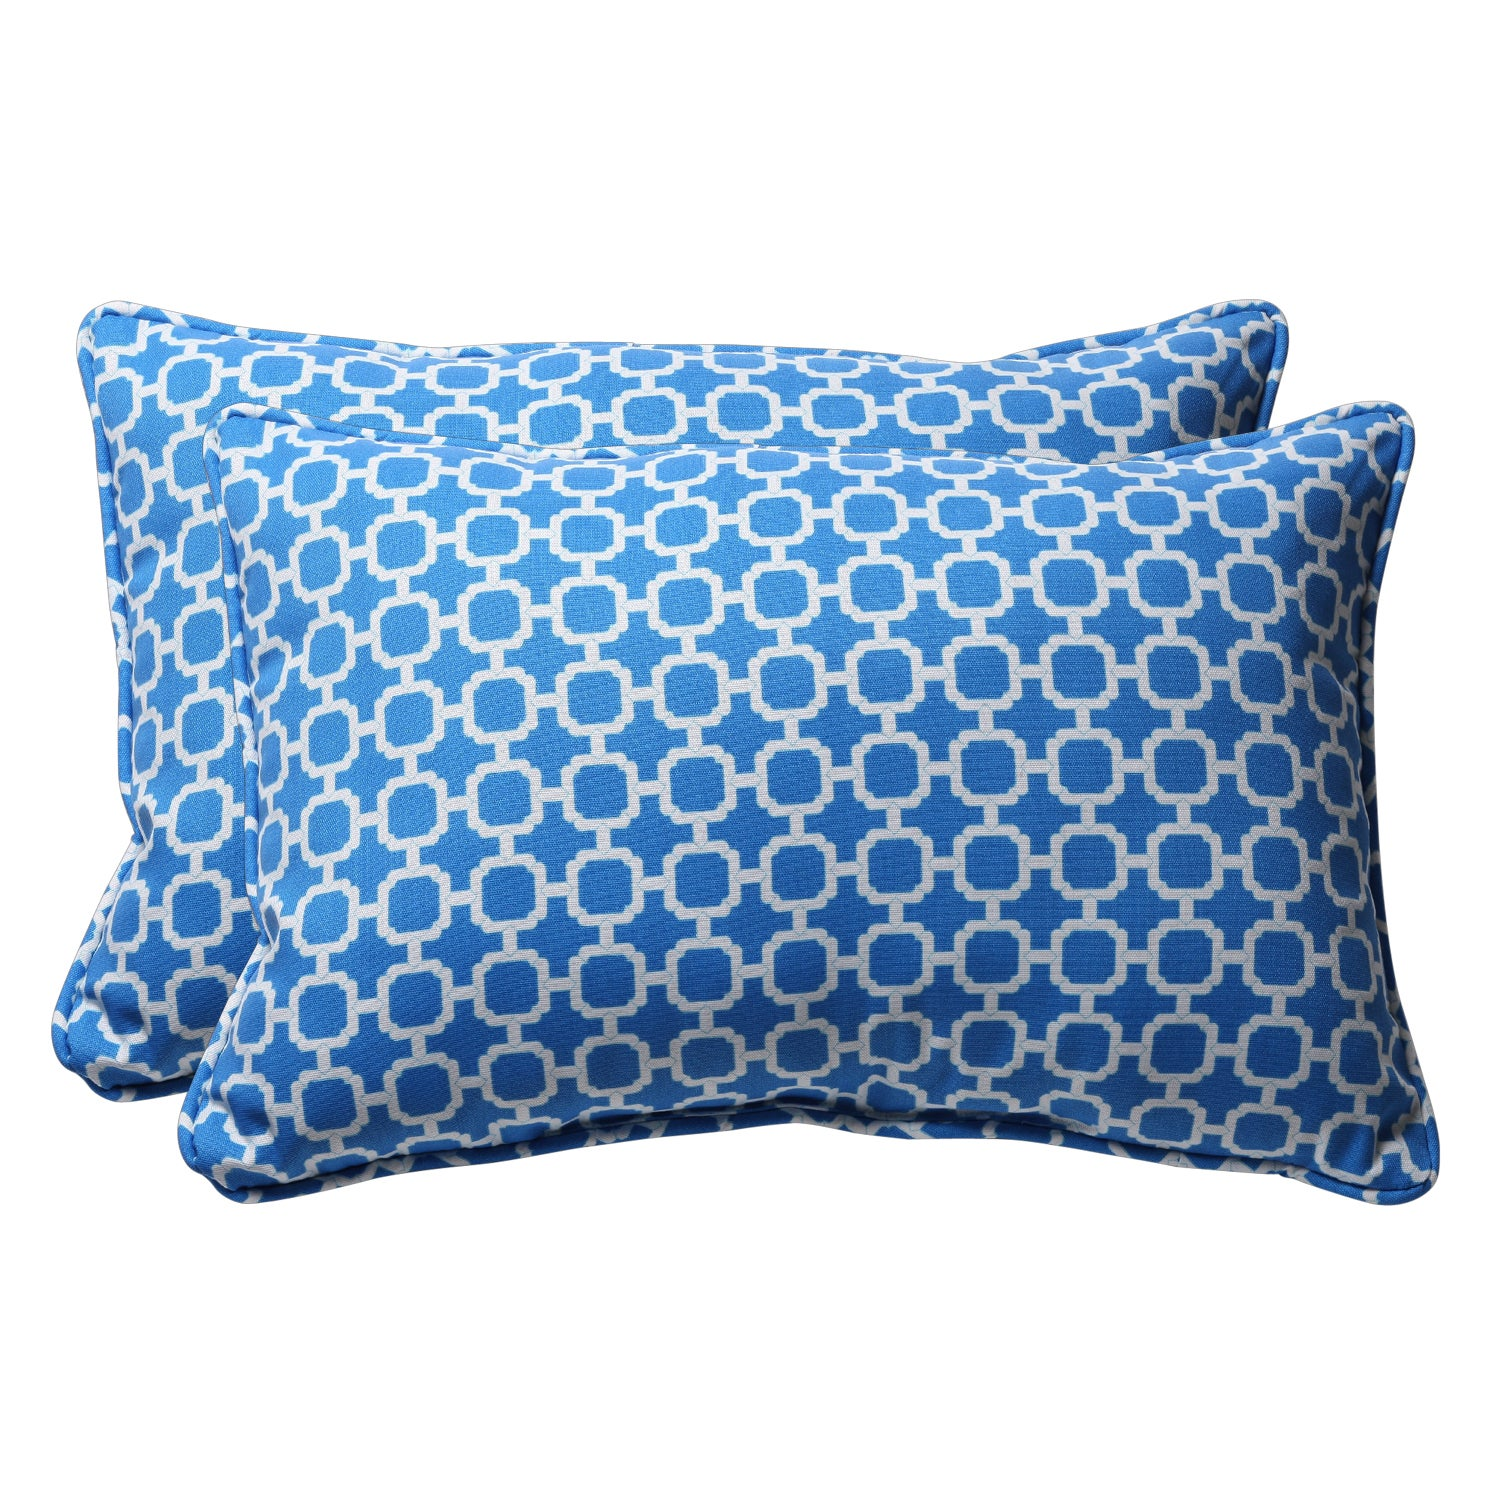 Decorative Blue and White Geometric Rectangle Outdoor Toss Pillows (Set of 2)